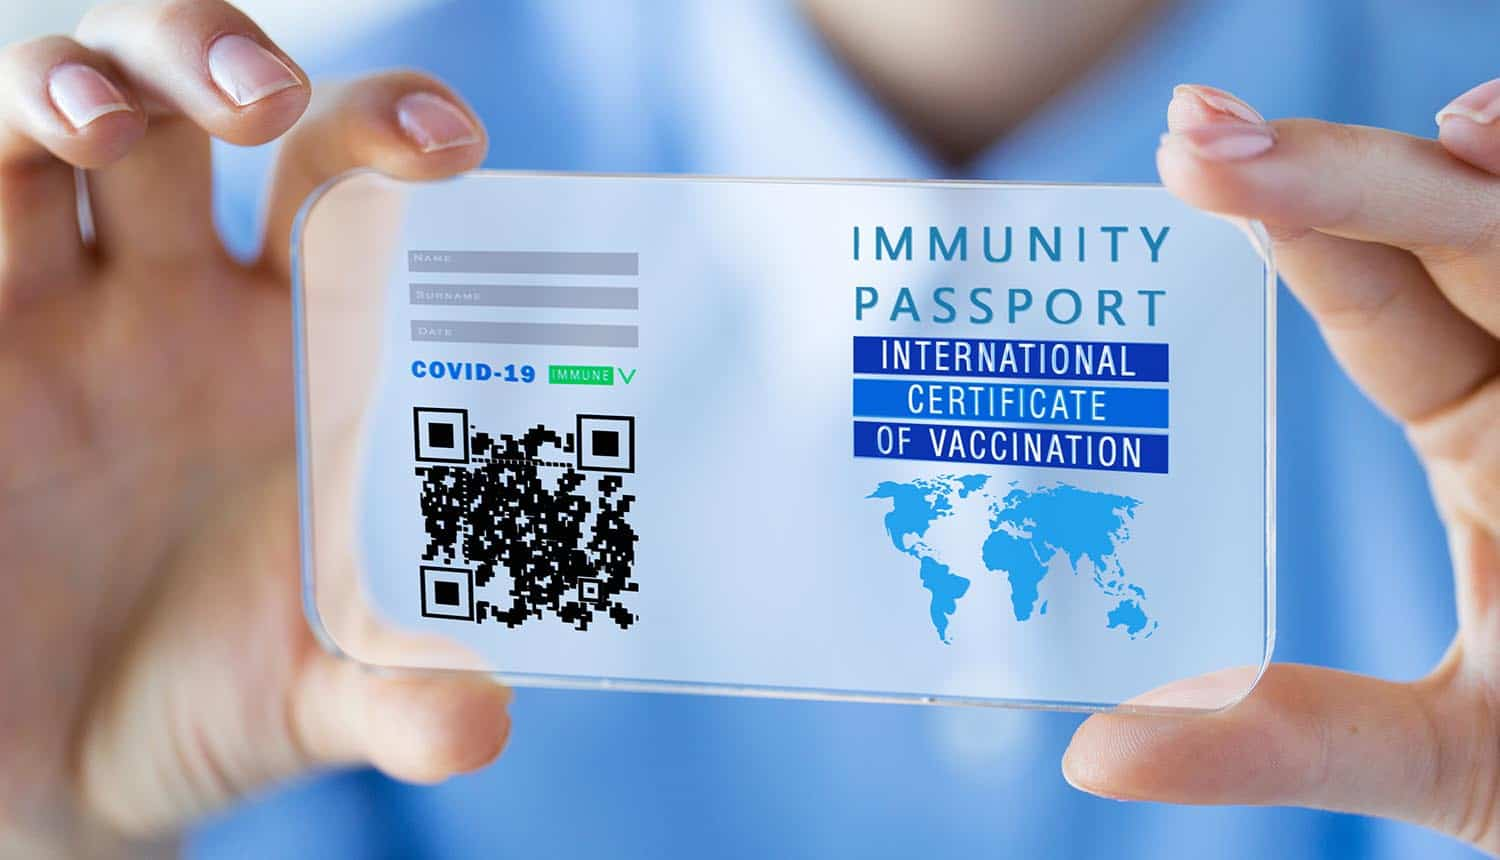 Woman's hands holding and showing COVID-19 vaccine passport